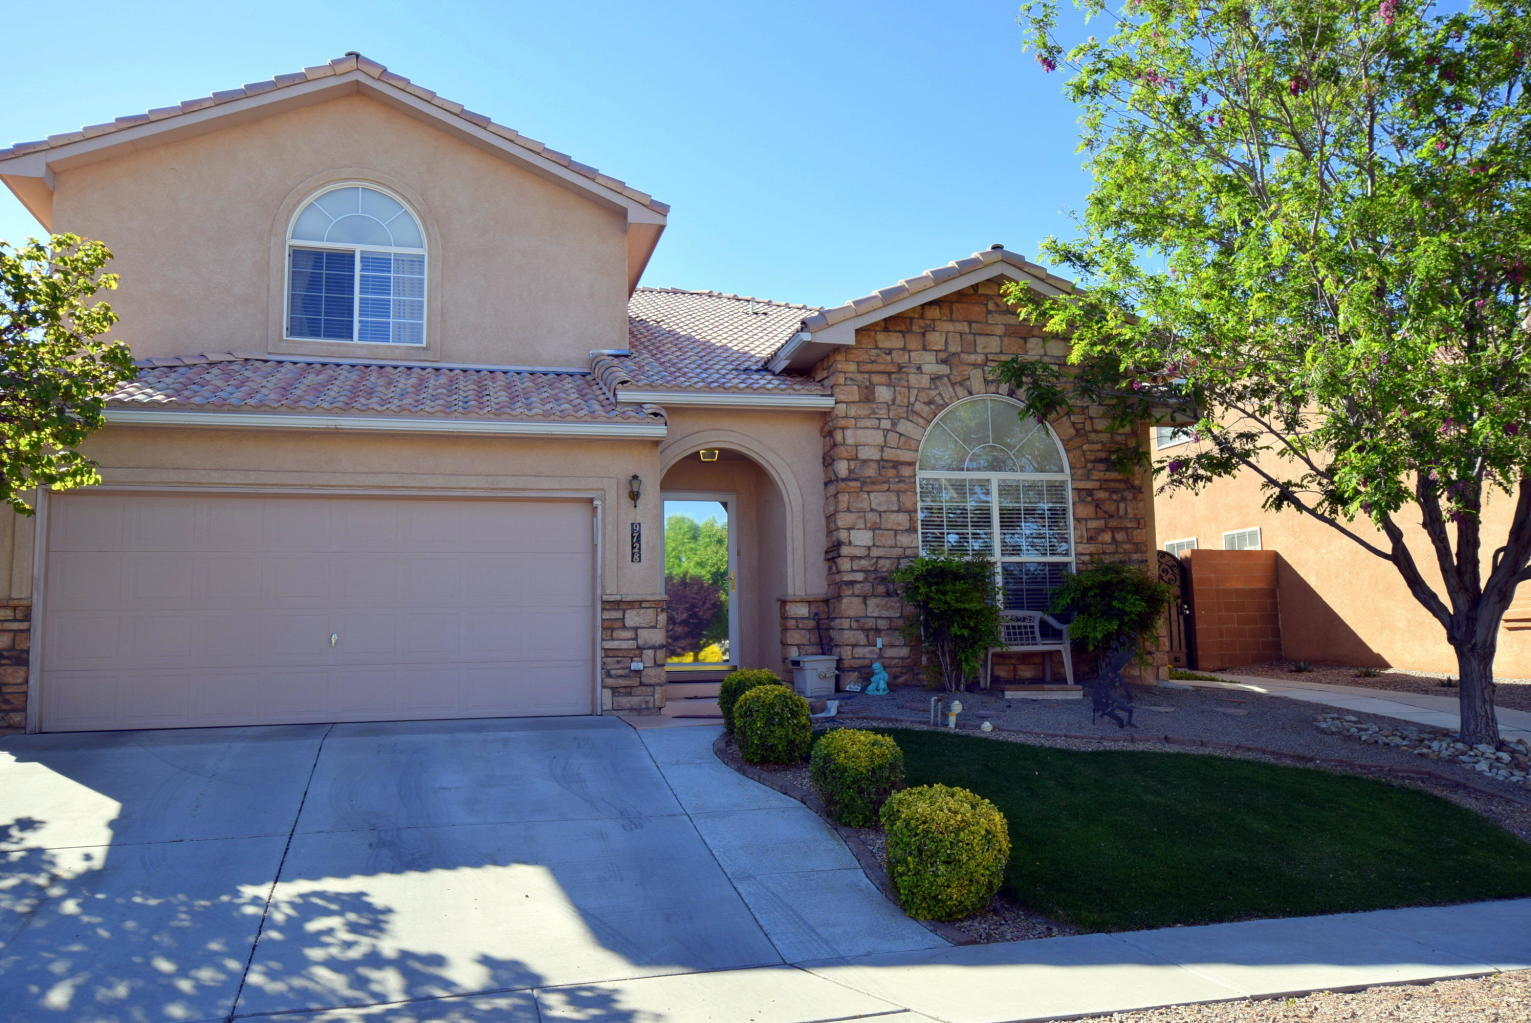 9728 Kokopelli Drive, Albuquerque NM 87114